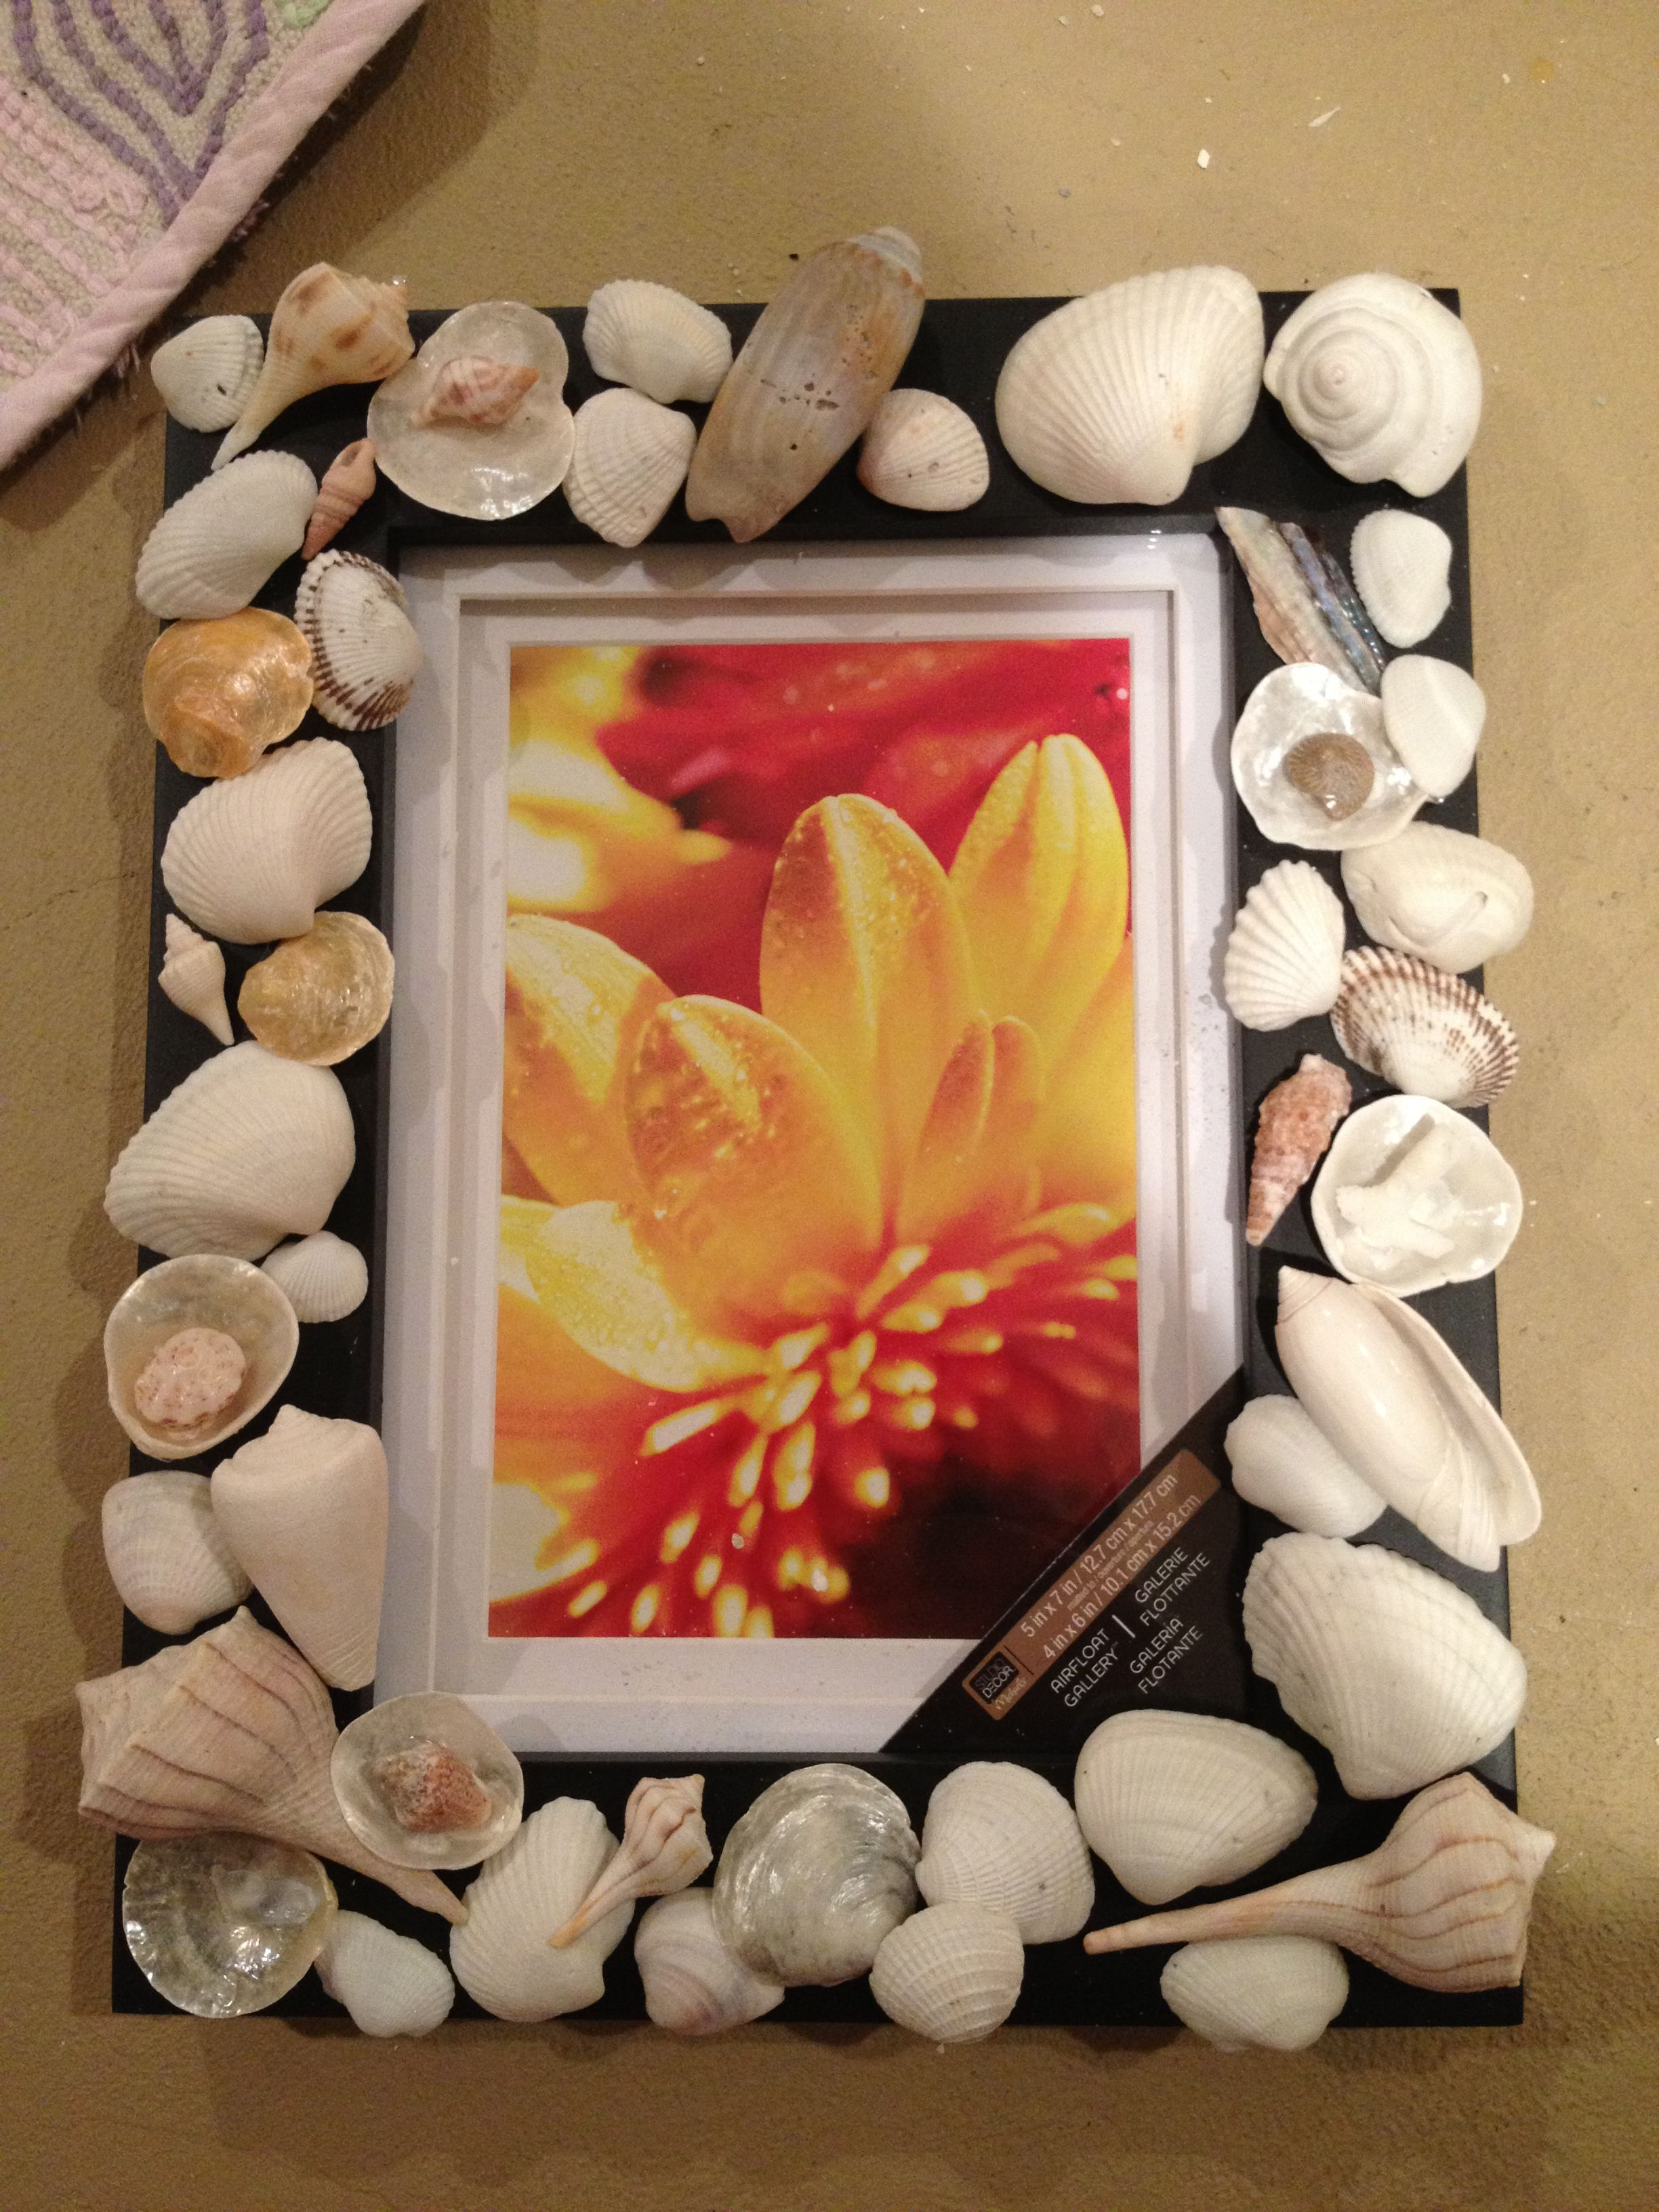 After a beach vacation use the shells to make a picture frame!